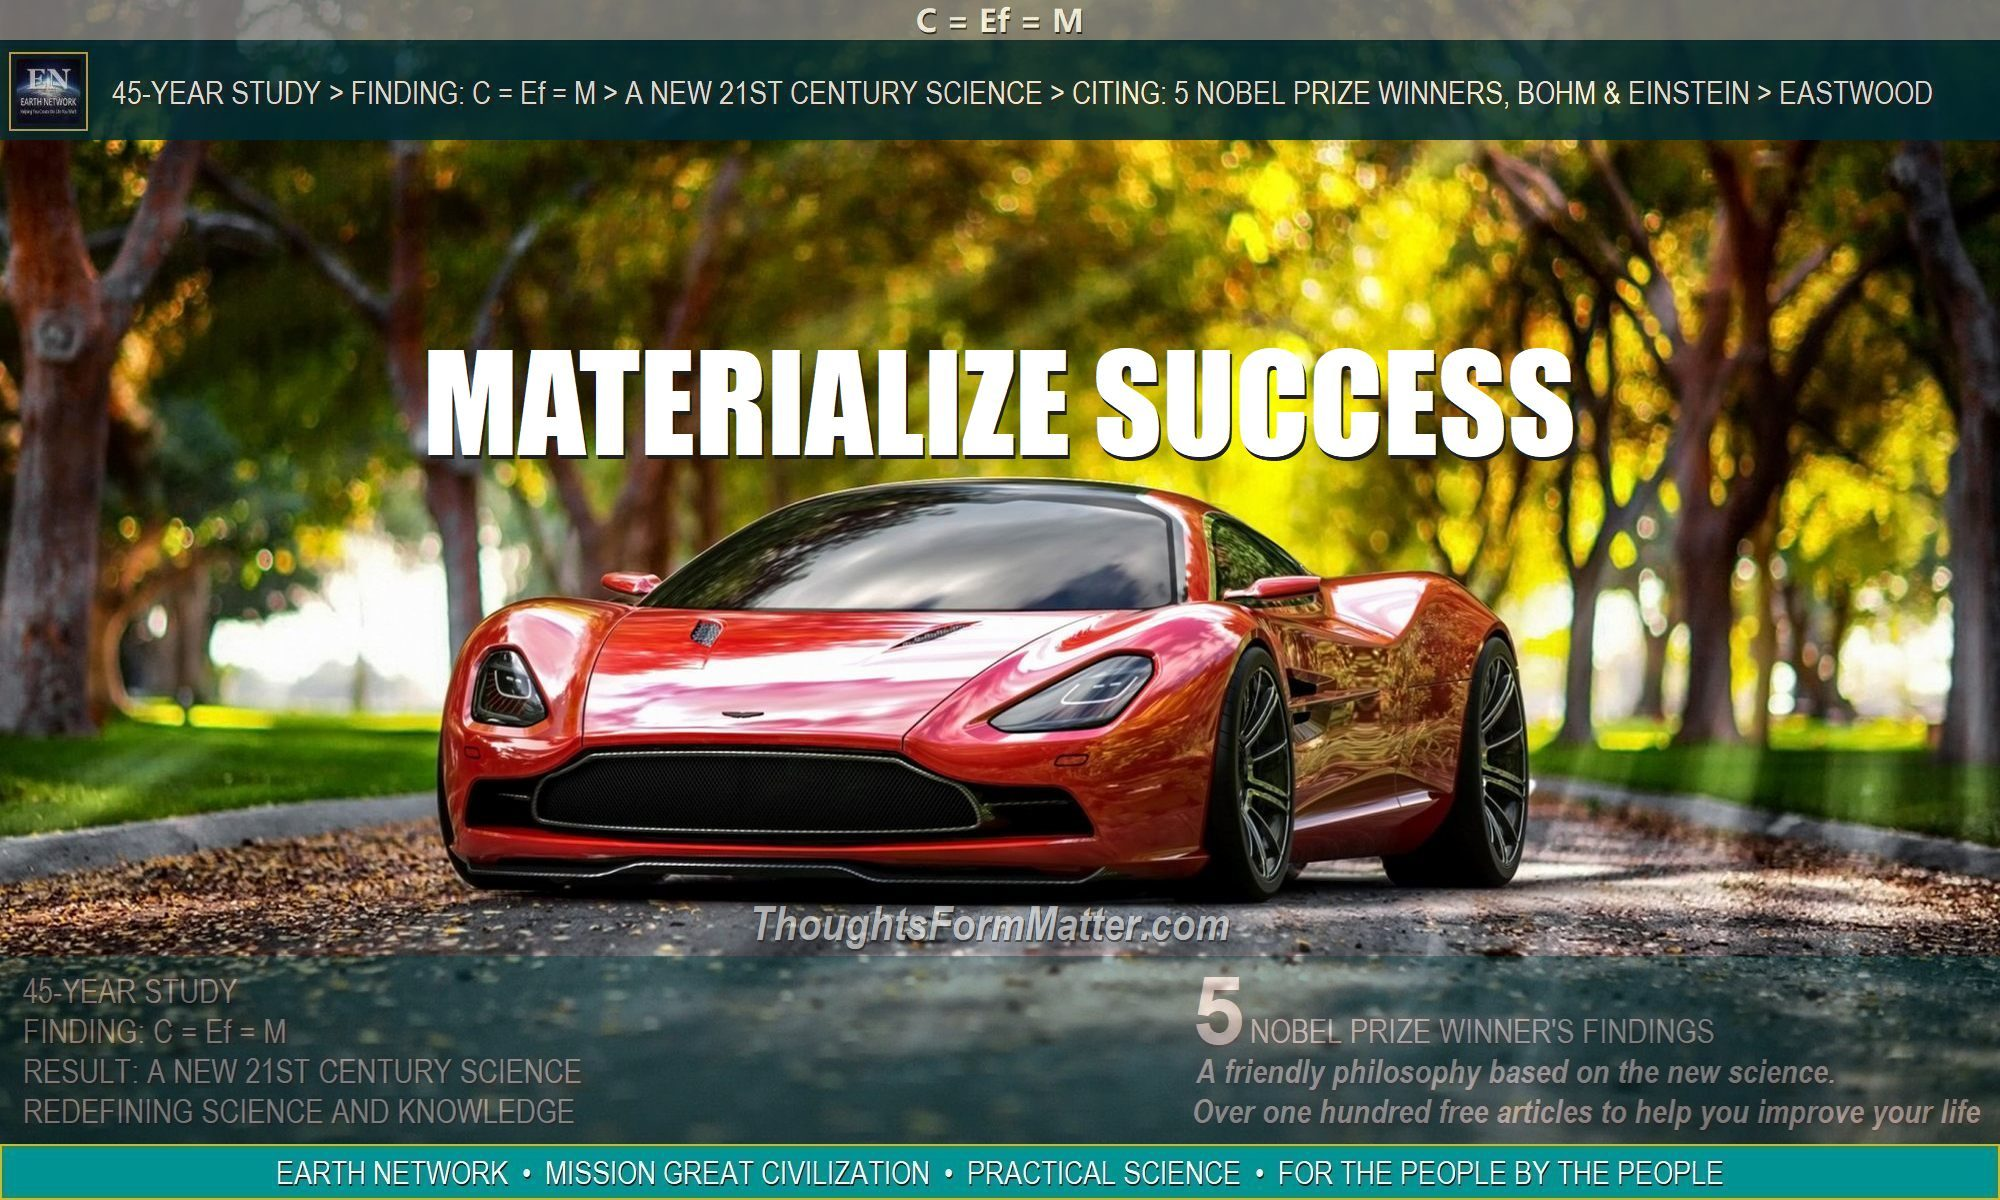 Austin Martin Ferrari is reward for knowing how to materialize success, money and wealth with your thoughts.